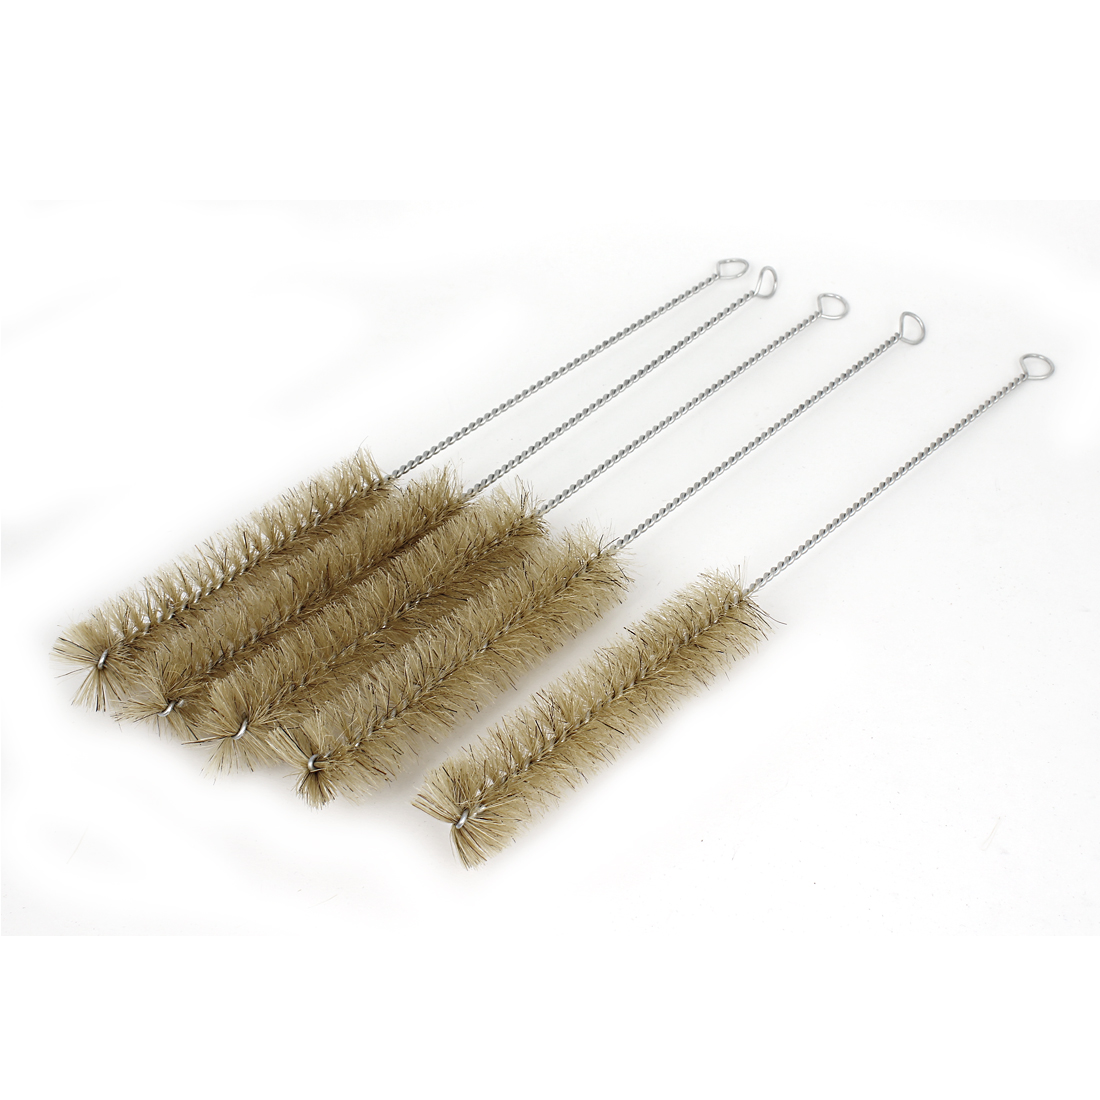 30mm Diameter Twist Handle Bristle Test Tube Cleaning Brush Brown 5 Pcs